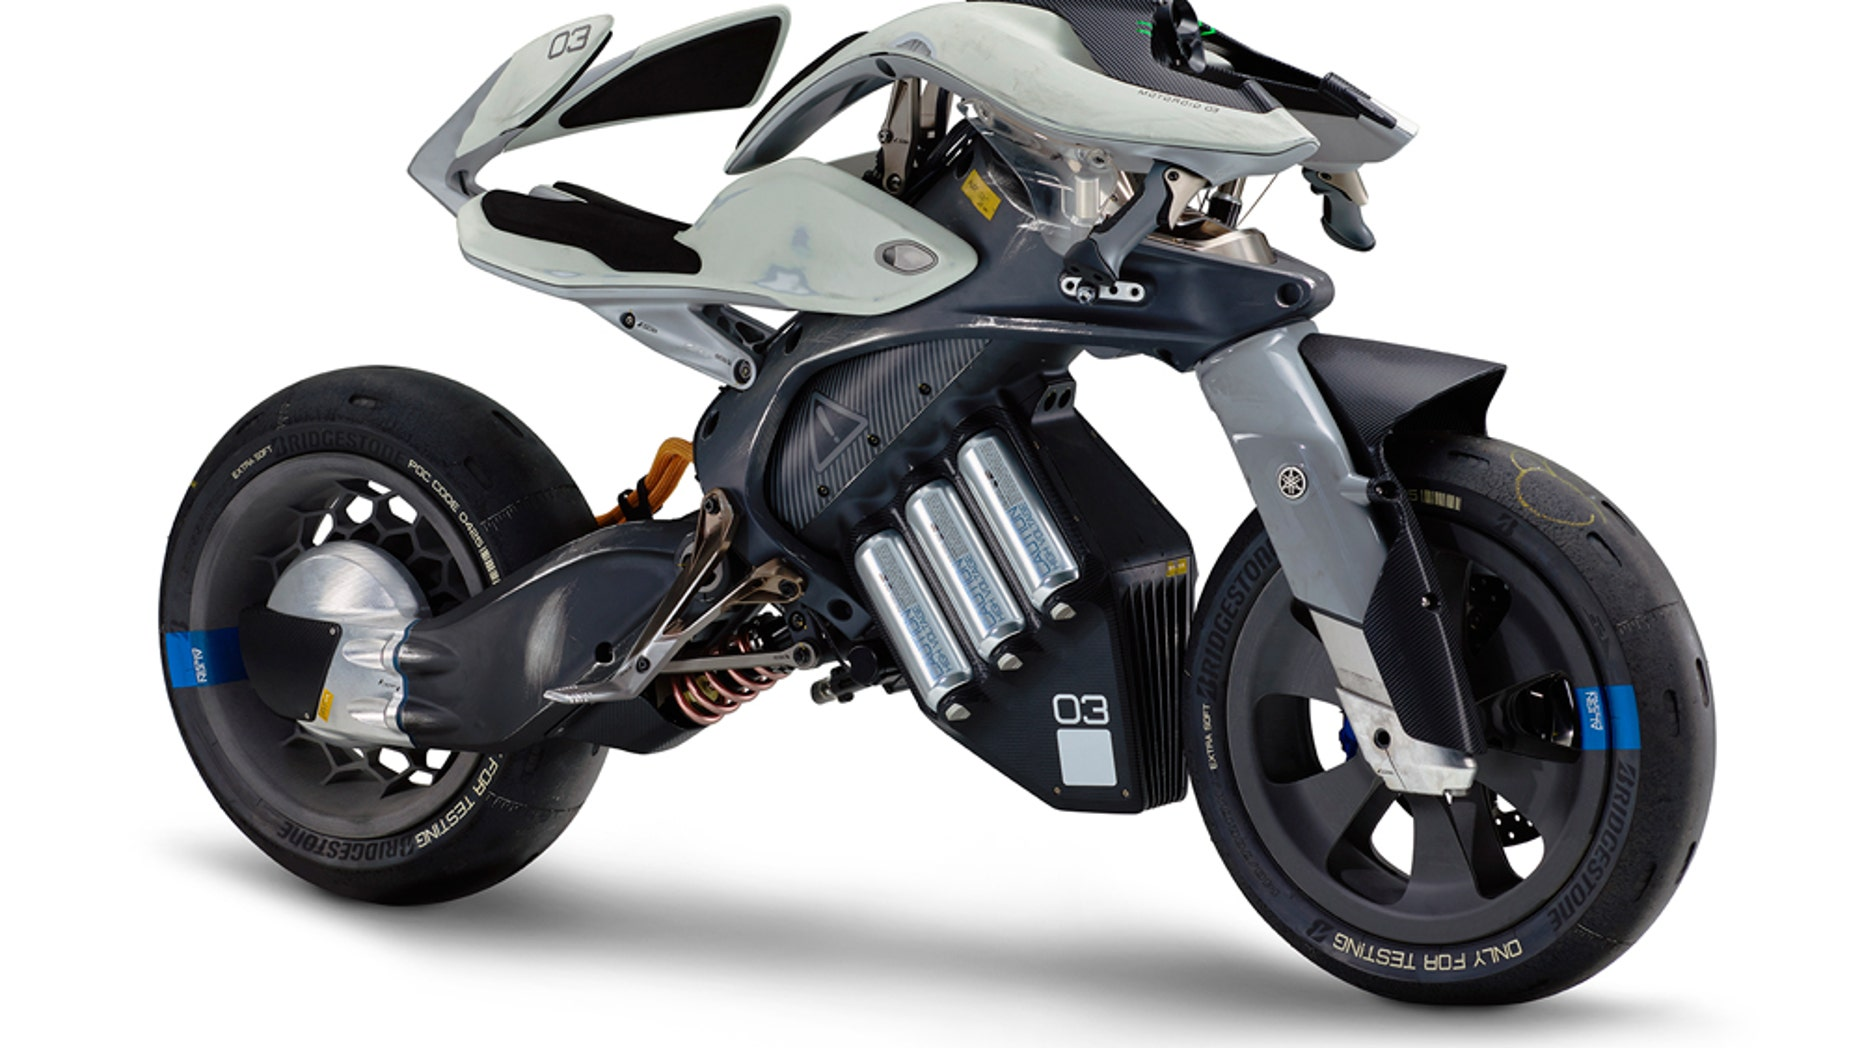 Yamaha reveals wild electric motorcycle concept | Fox News